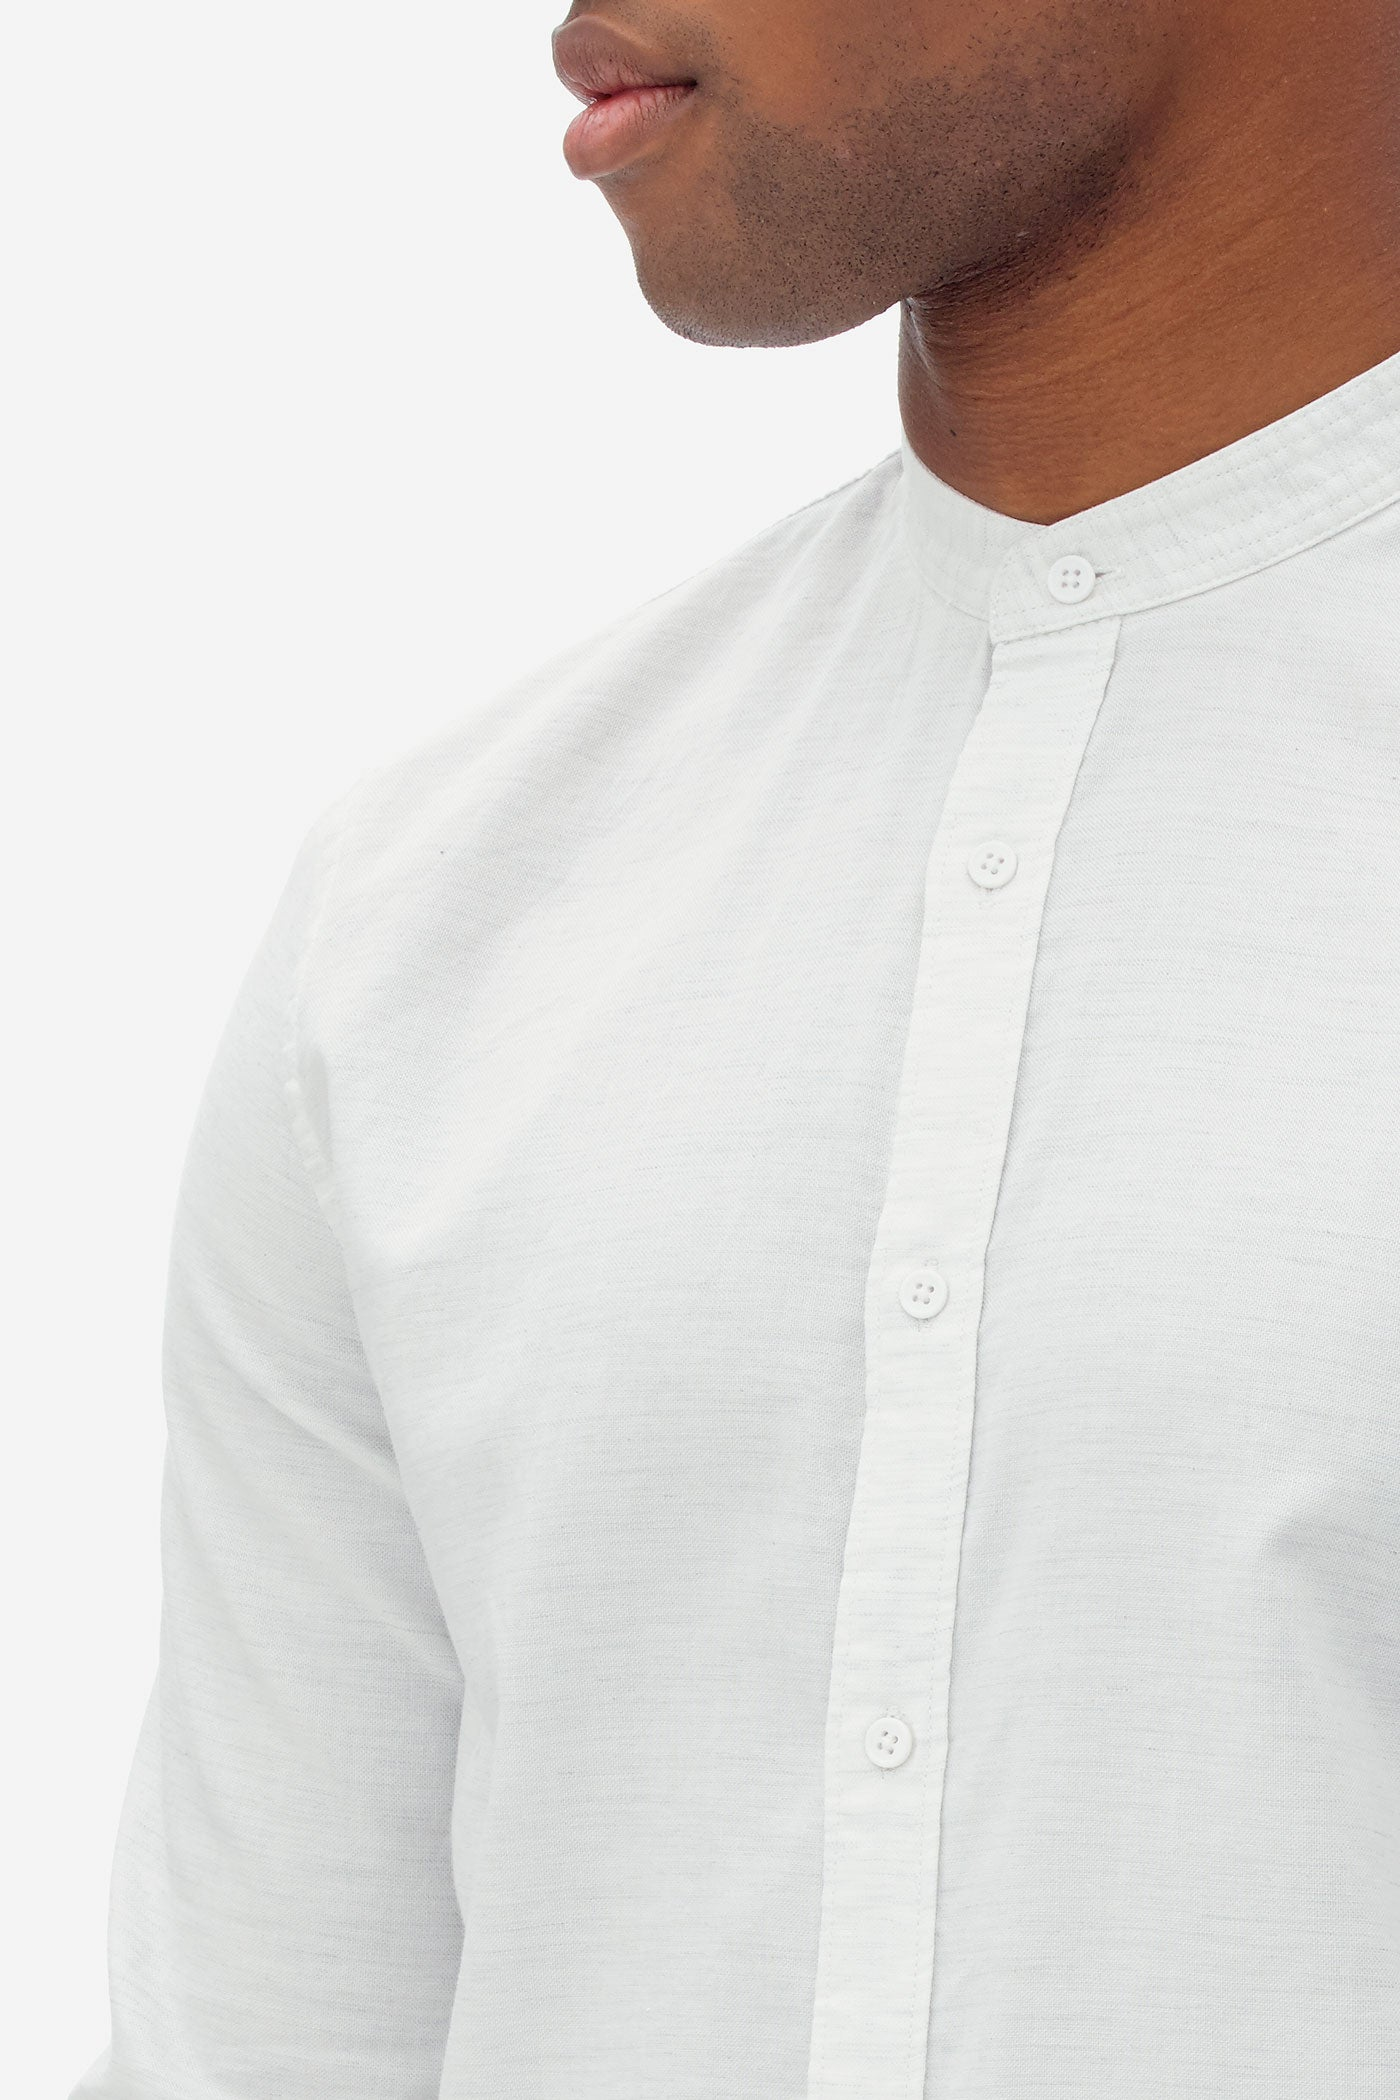 NAB0107D2 oxford melange shirt